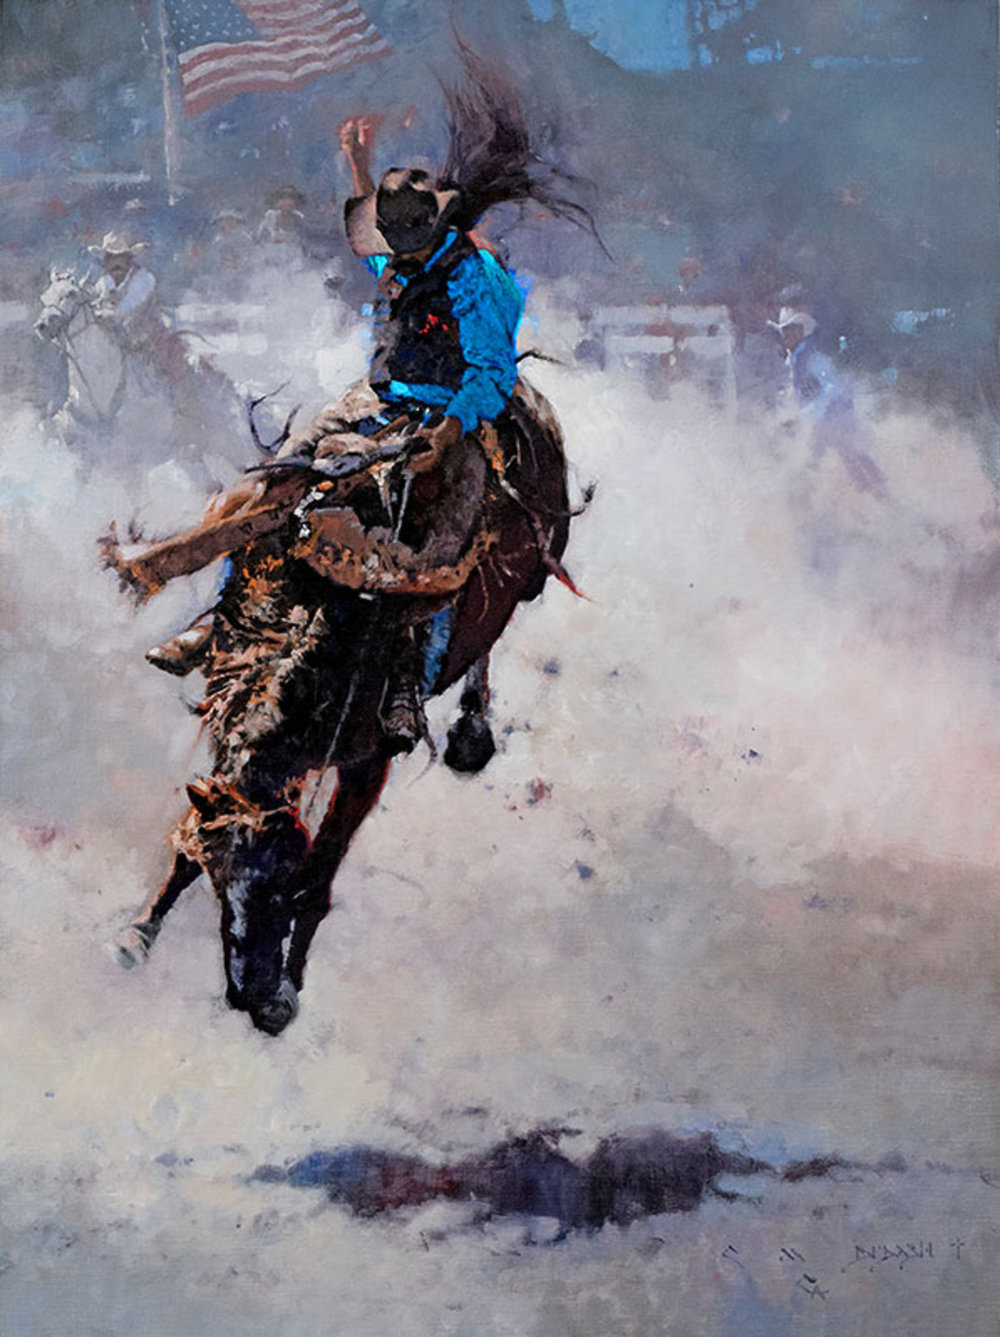 "*****SOLD*****  ""RODEO - FLYIN' HIGH""  Oil on Linen  32"" x 24"" Sold at  Quest For The West, The Eiteljorg Museum  Indianapolis, IN Sept 8-9, 2017"